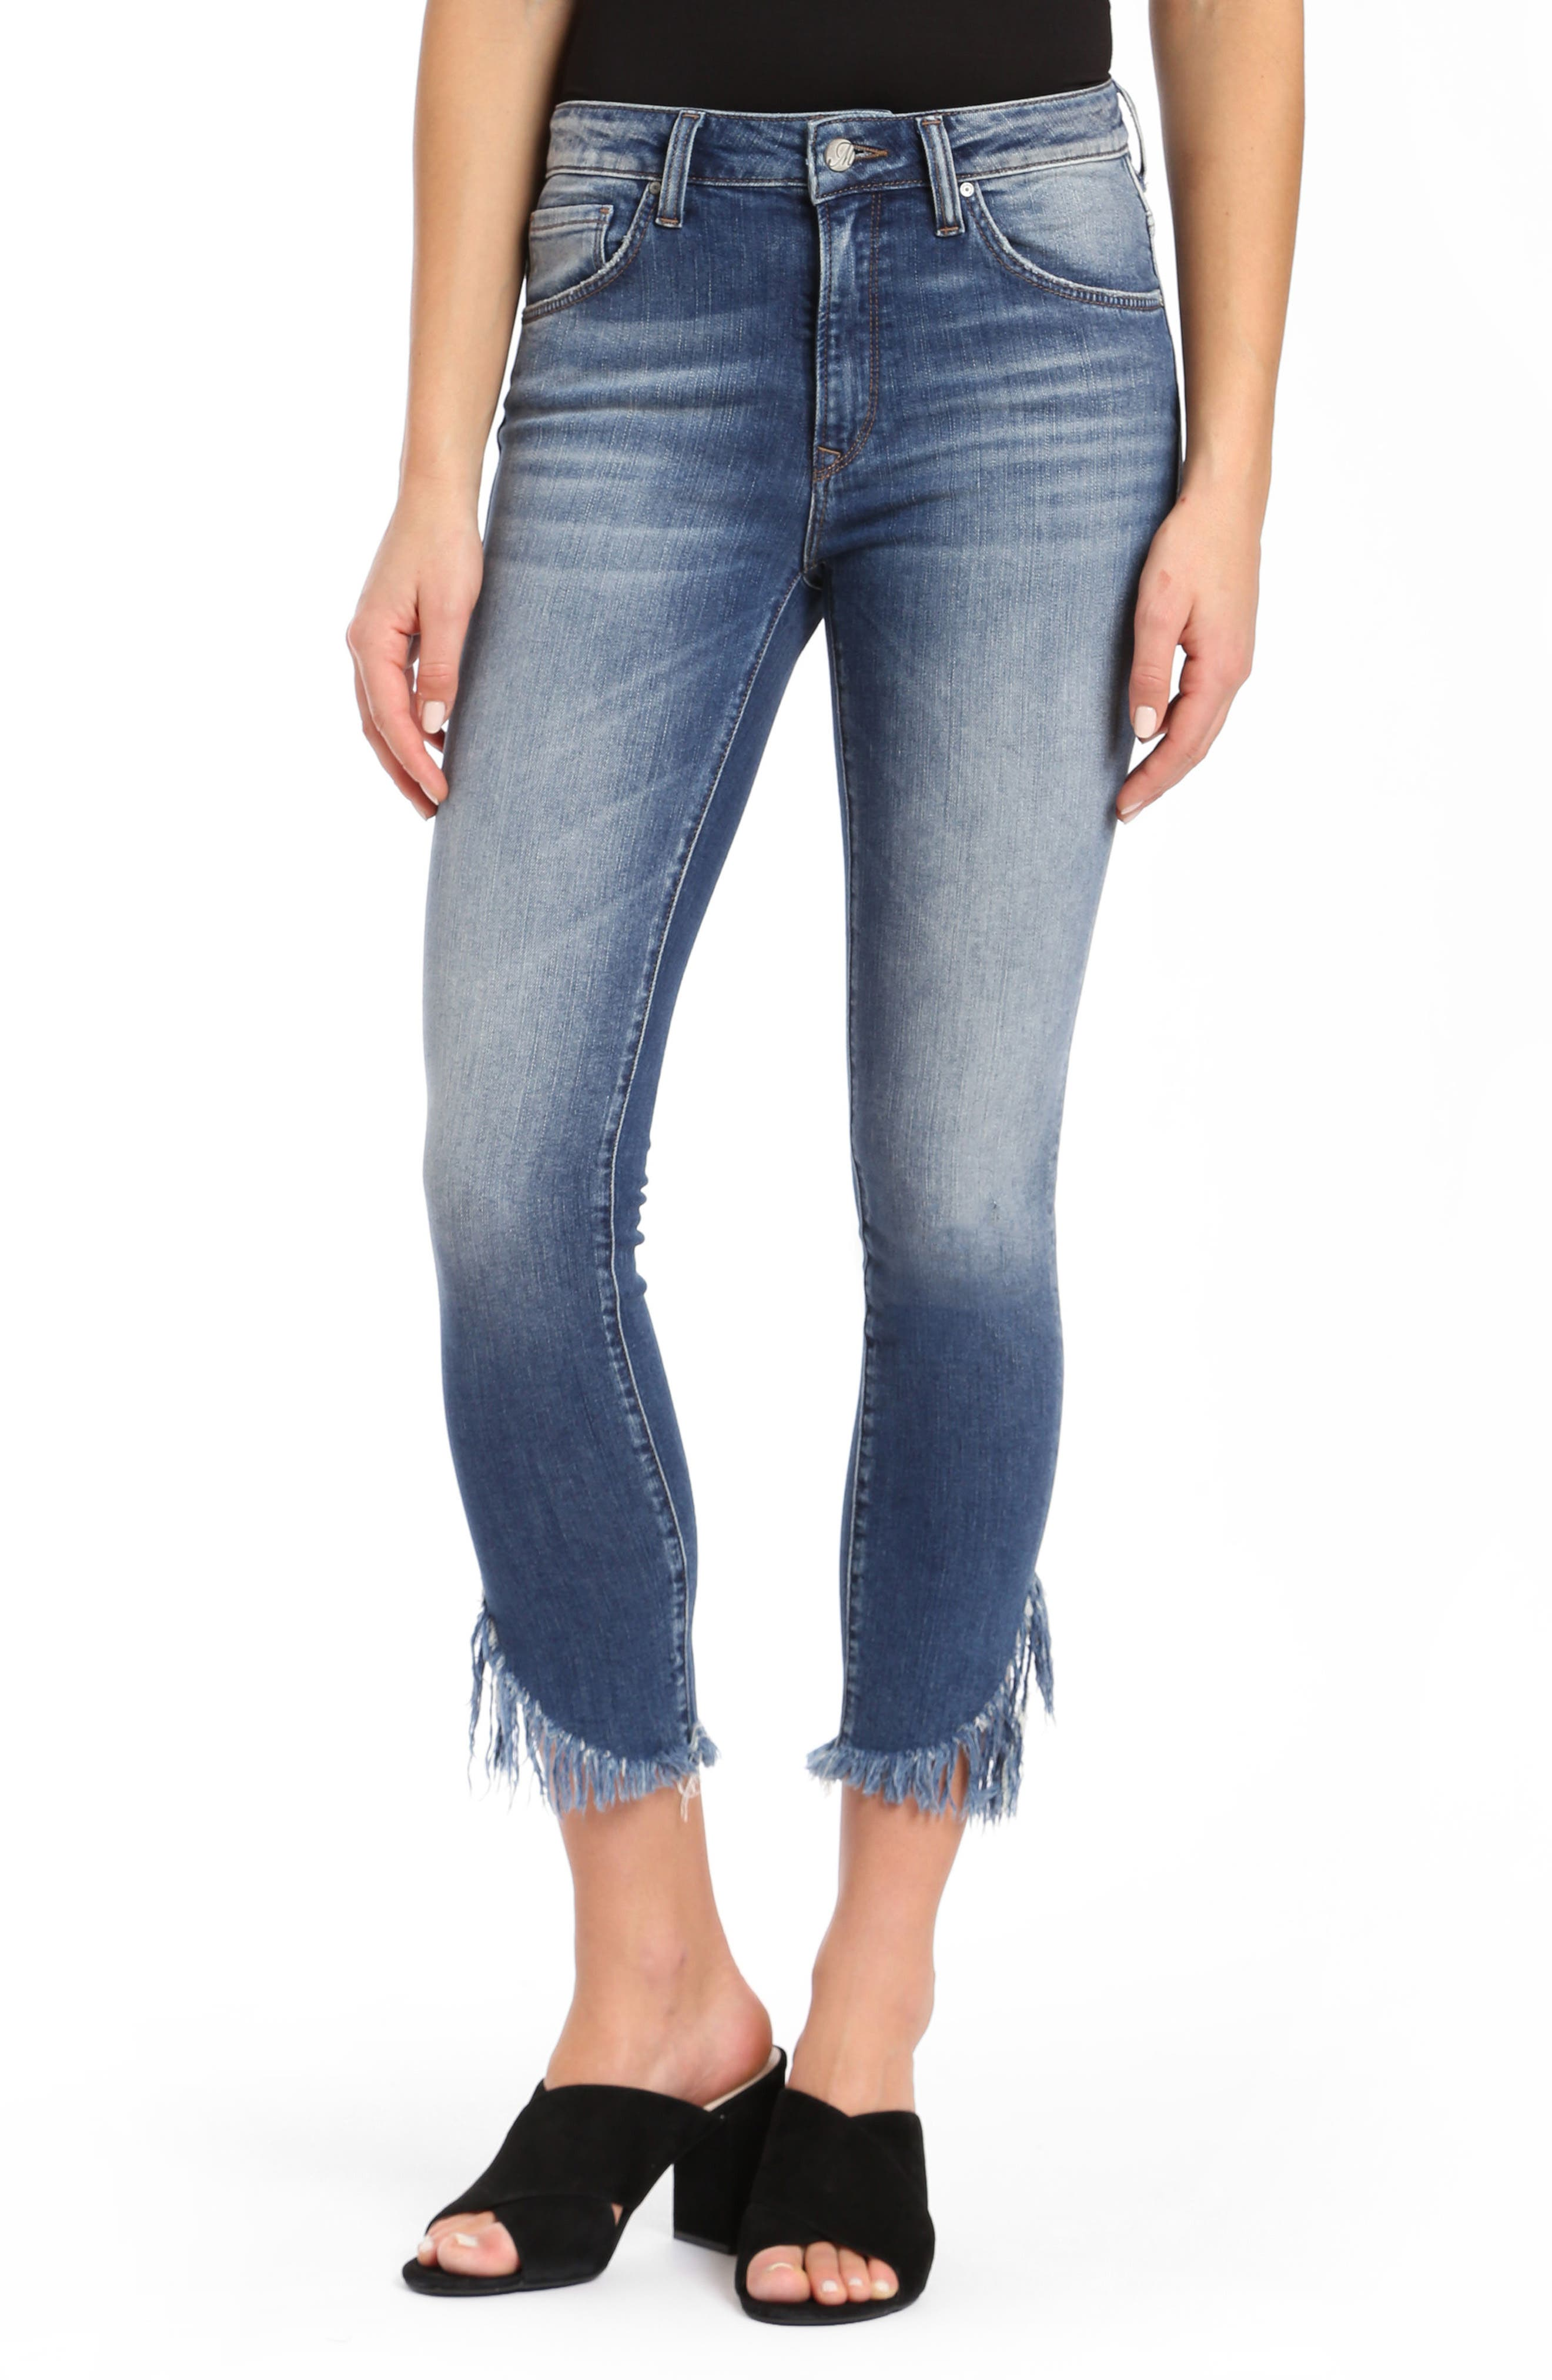 Tess Extreme Ripped Super Skinny Jeans,                         Main,                         color, EXTREME RIPPED VINTAGE